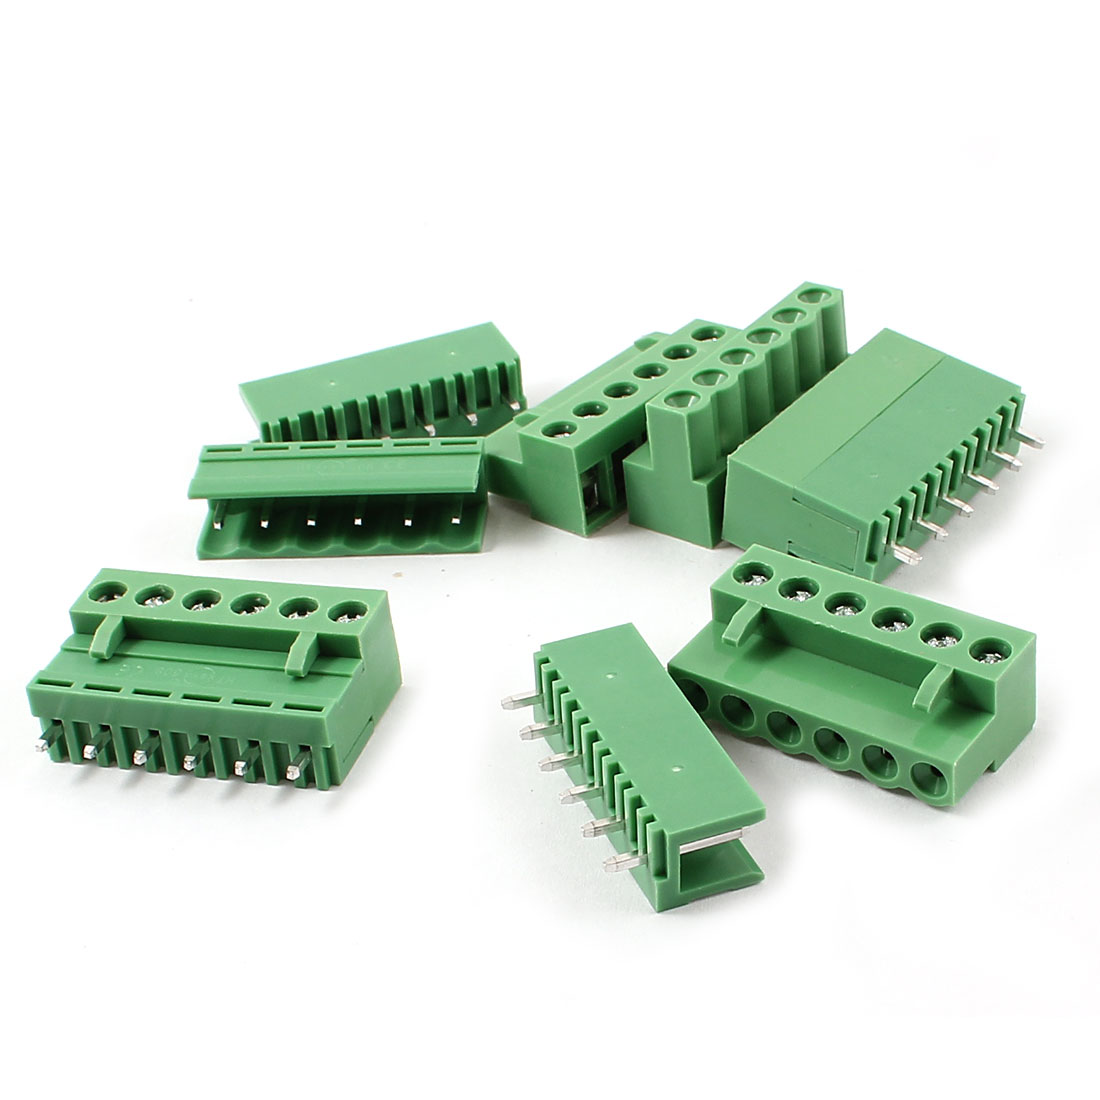 5 Set 6 Pin 5.08mm Screw Pluggable Terminal Block Connector Green 300V 10A